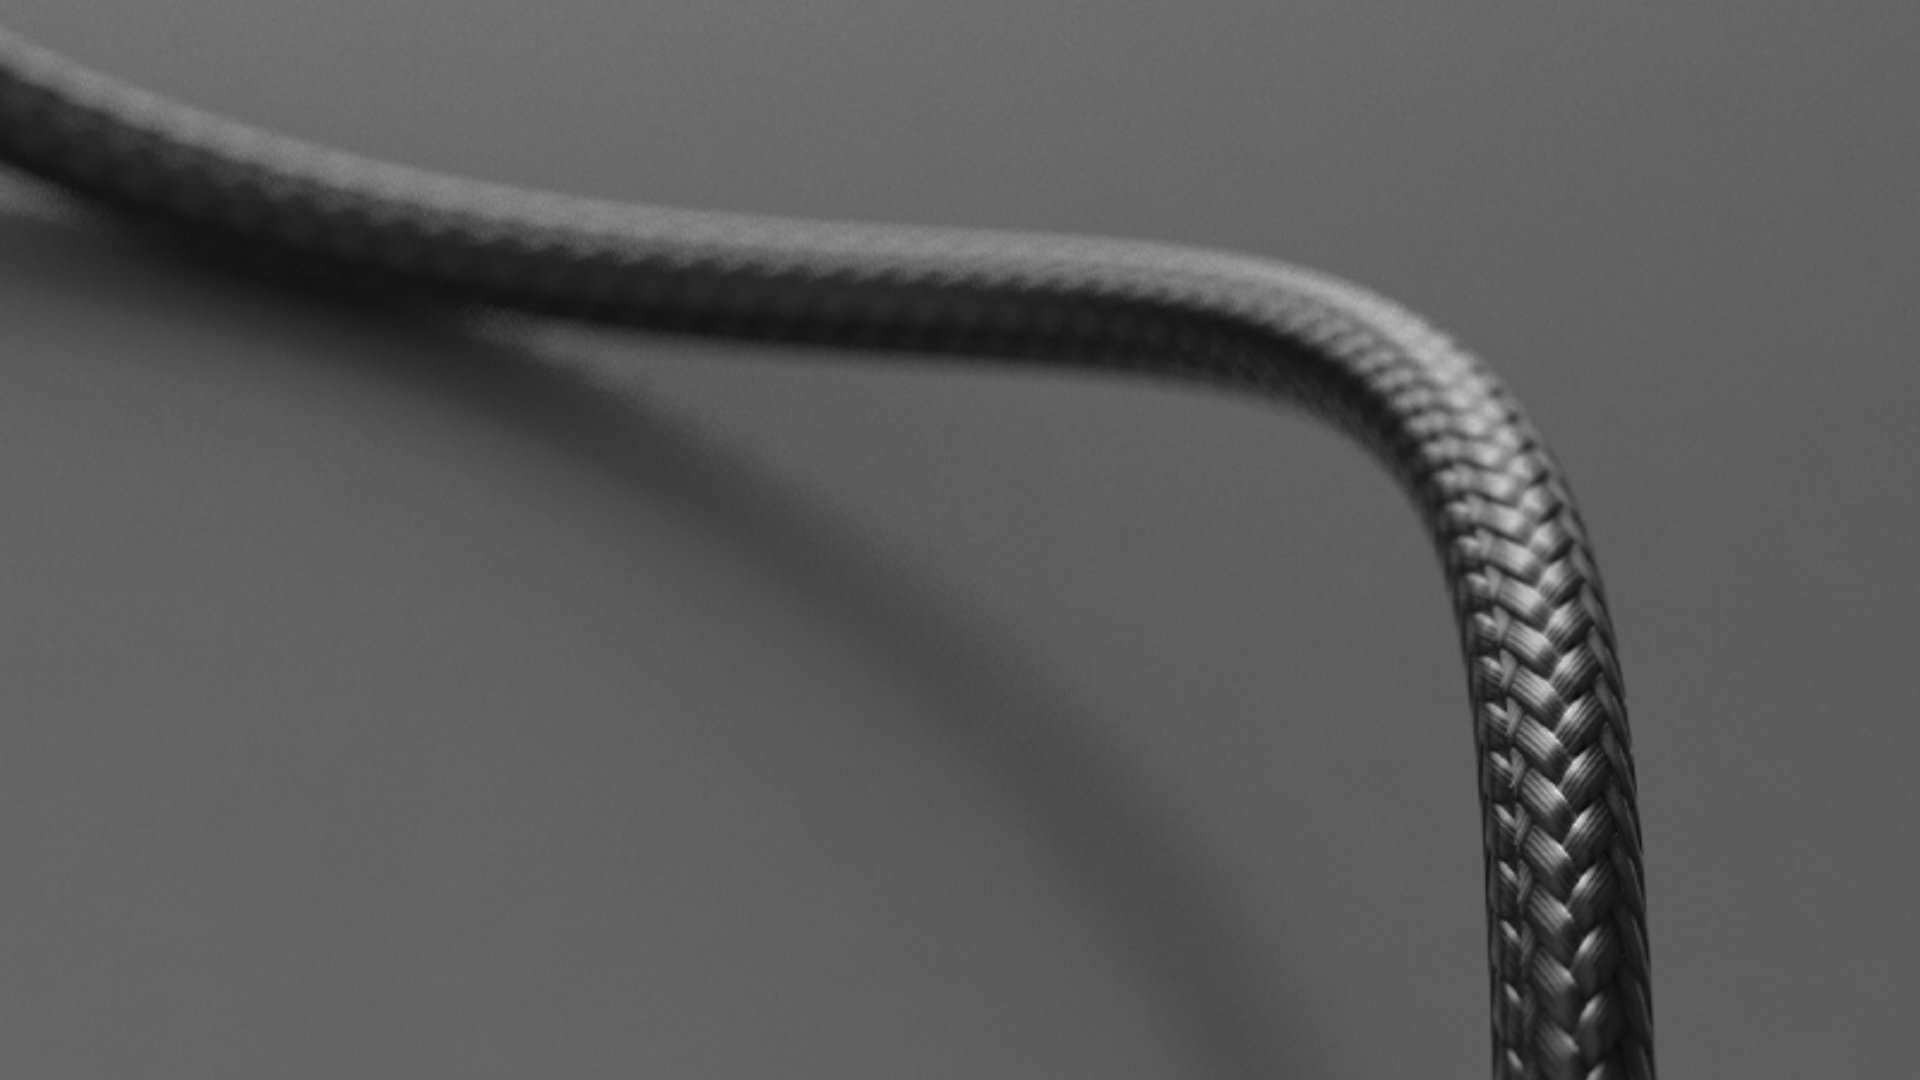 FiiO LT-TC1 Kabel im Detail